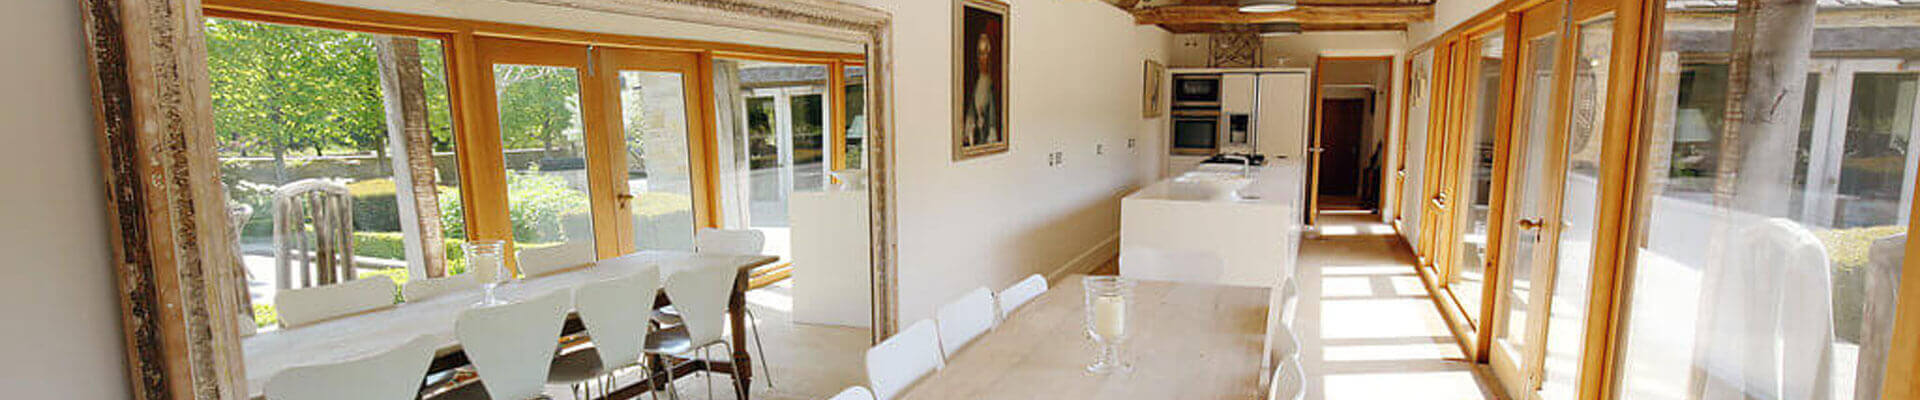 Photo of one of the dining areas at Temple Guiting Estates